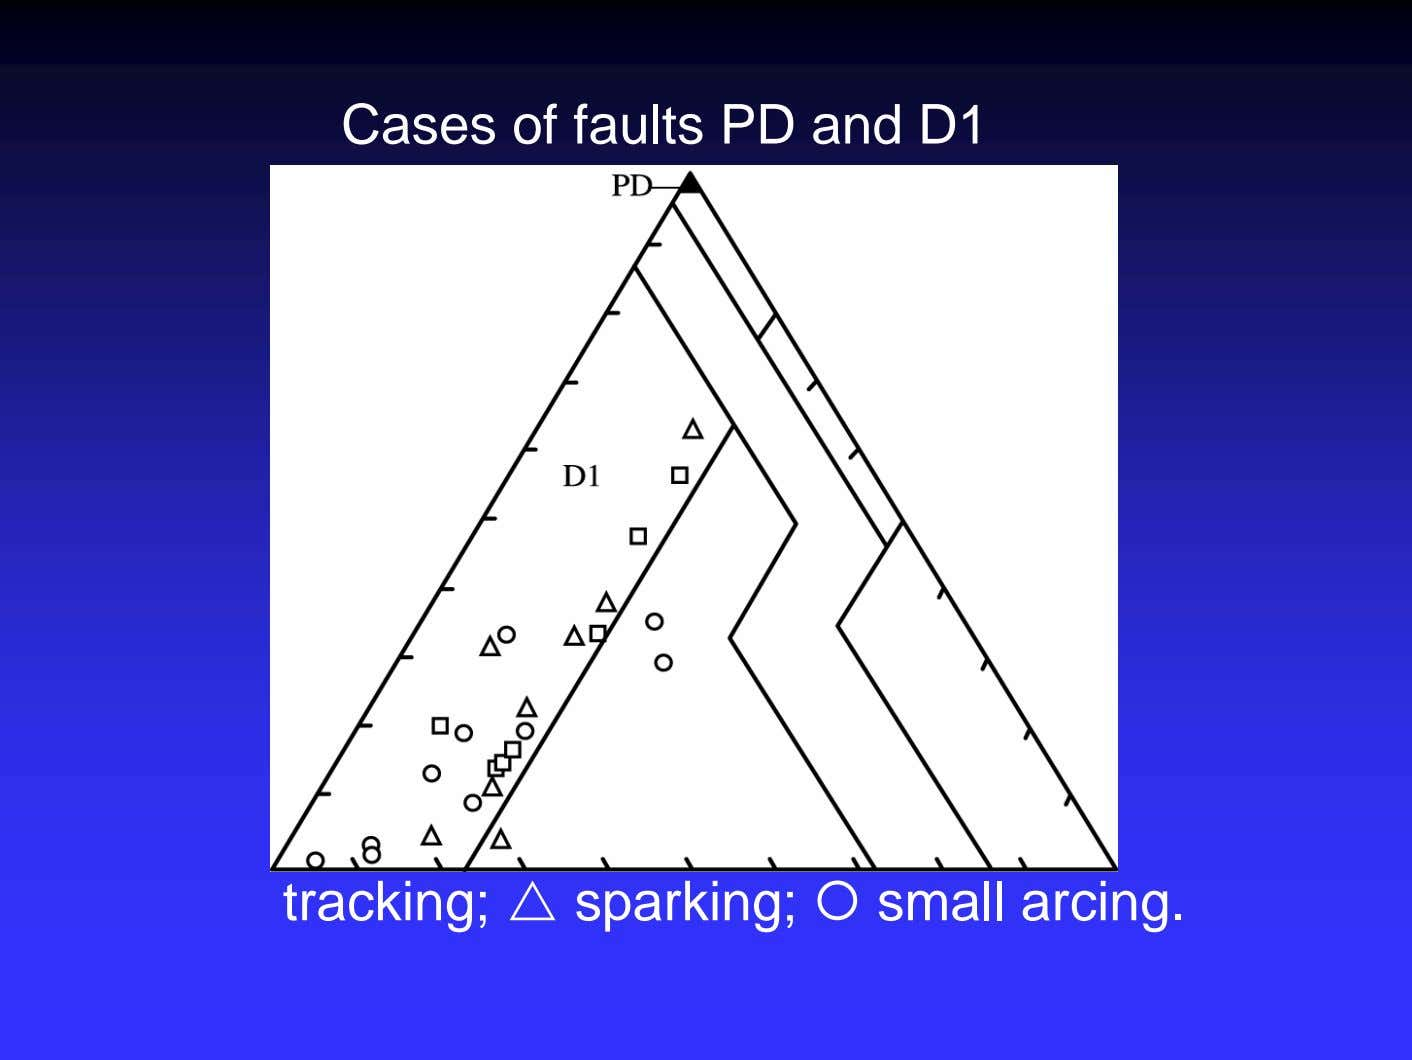 Cases of faults PD and D1 tracking; sparking; small arcing.